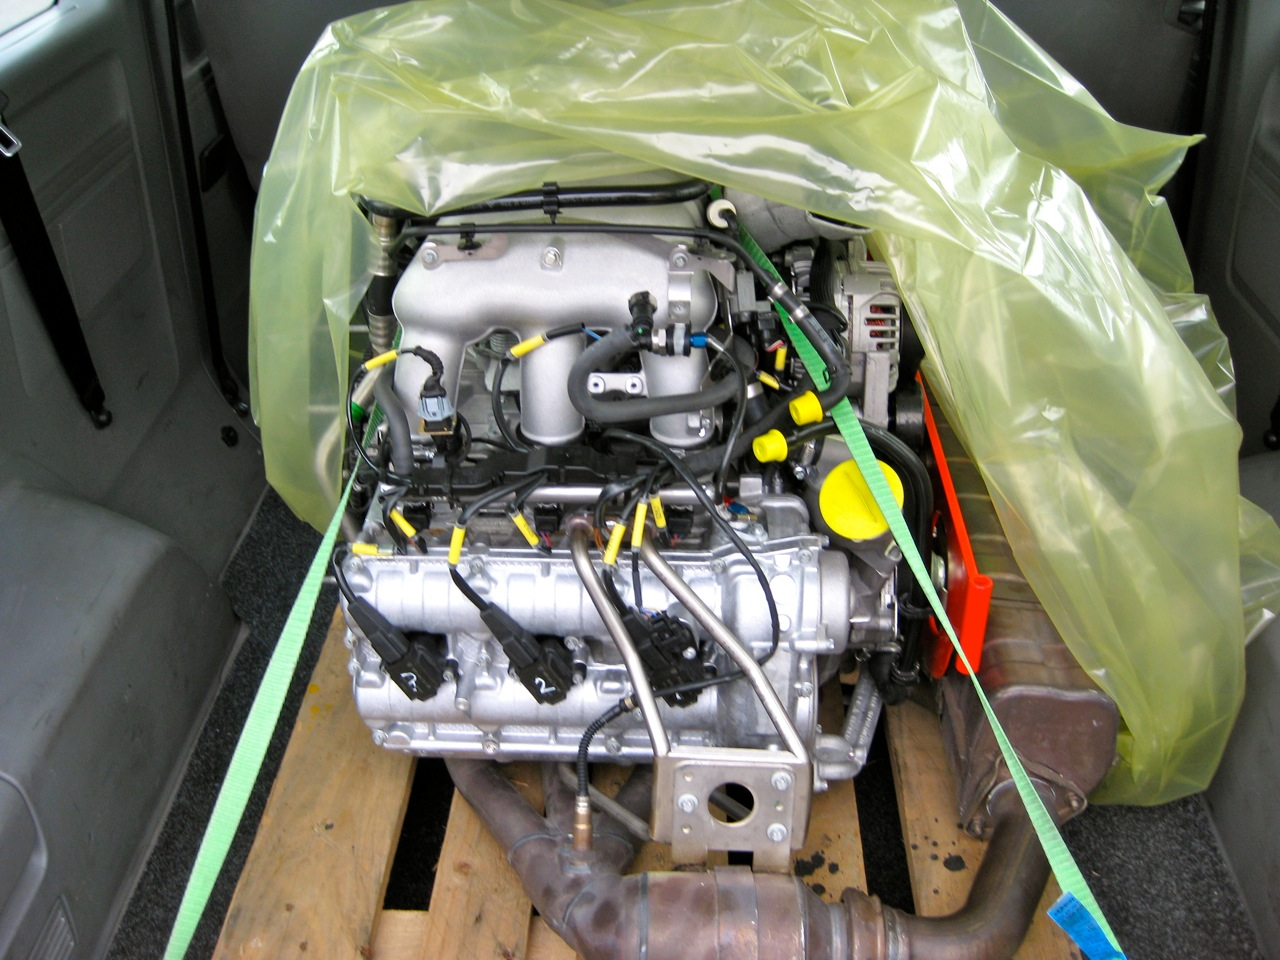 3.8 Liter - made in Germany